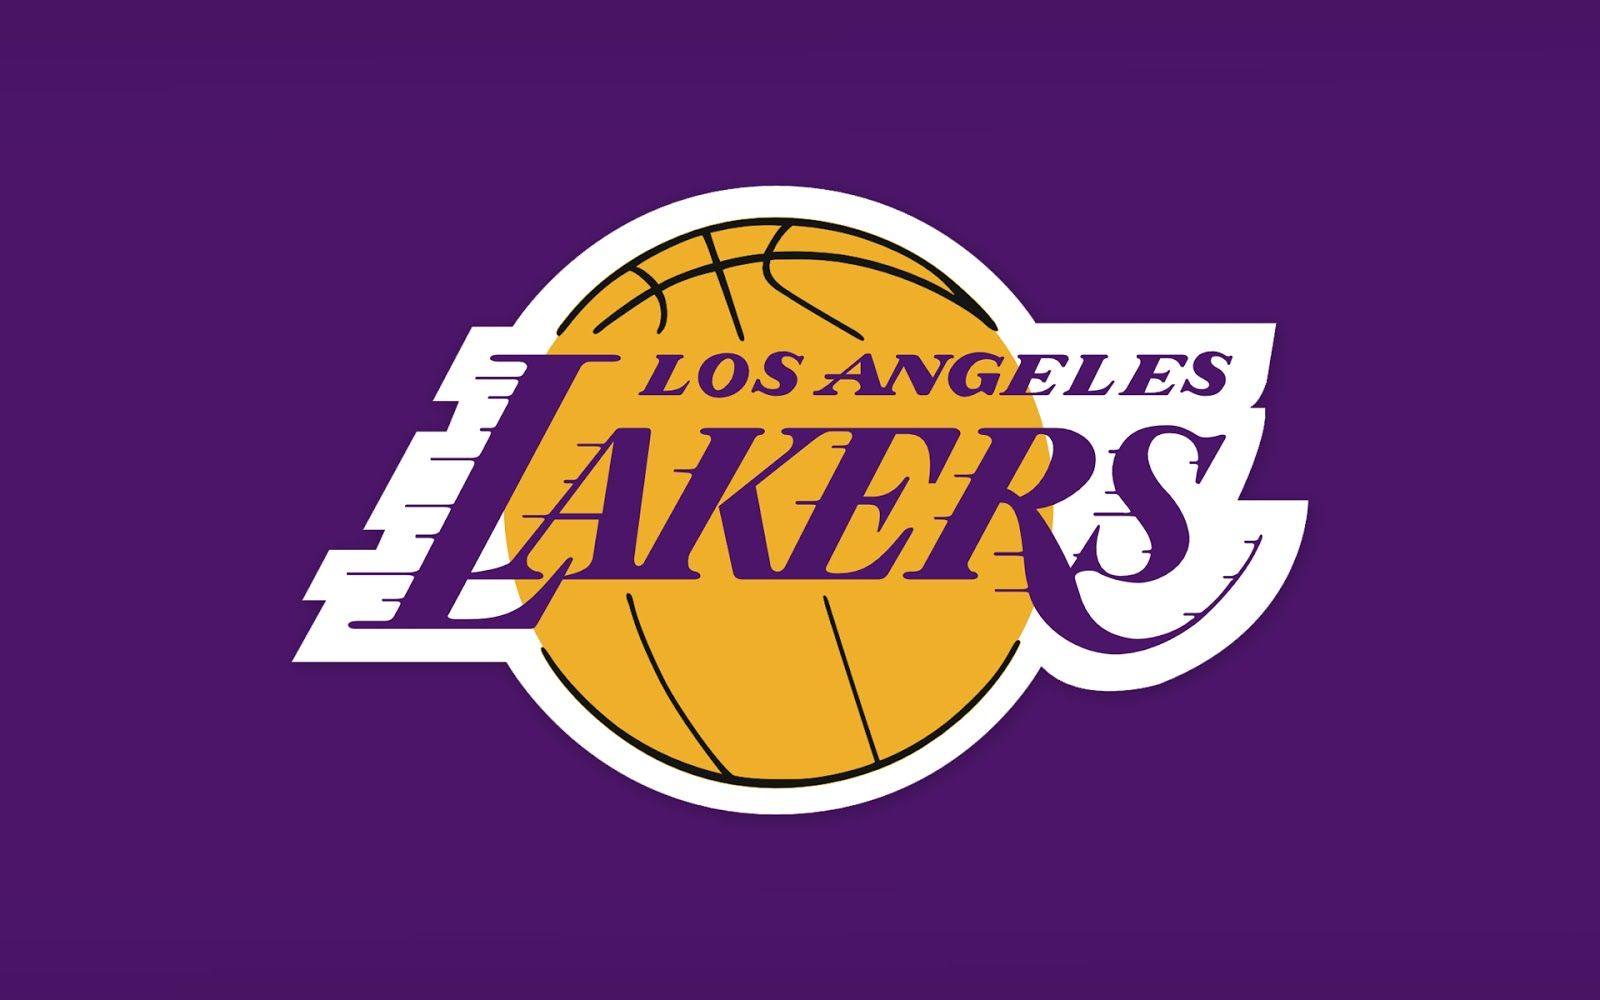 La Lakers Los Angeles Lakers Los Angeles Lakers Logo Lakers Logo